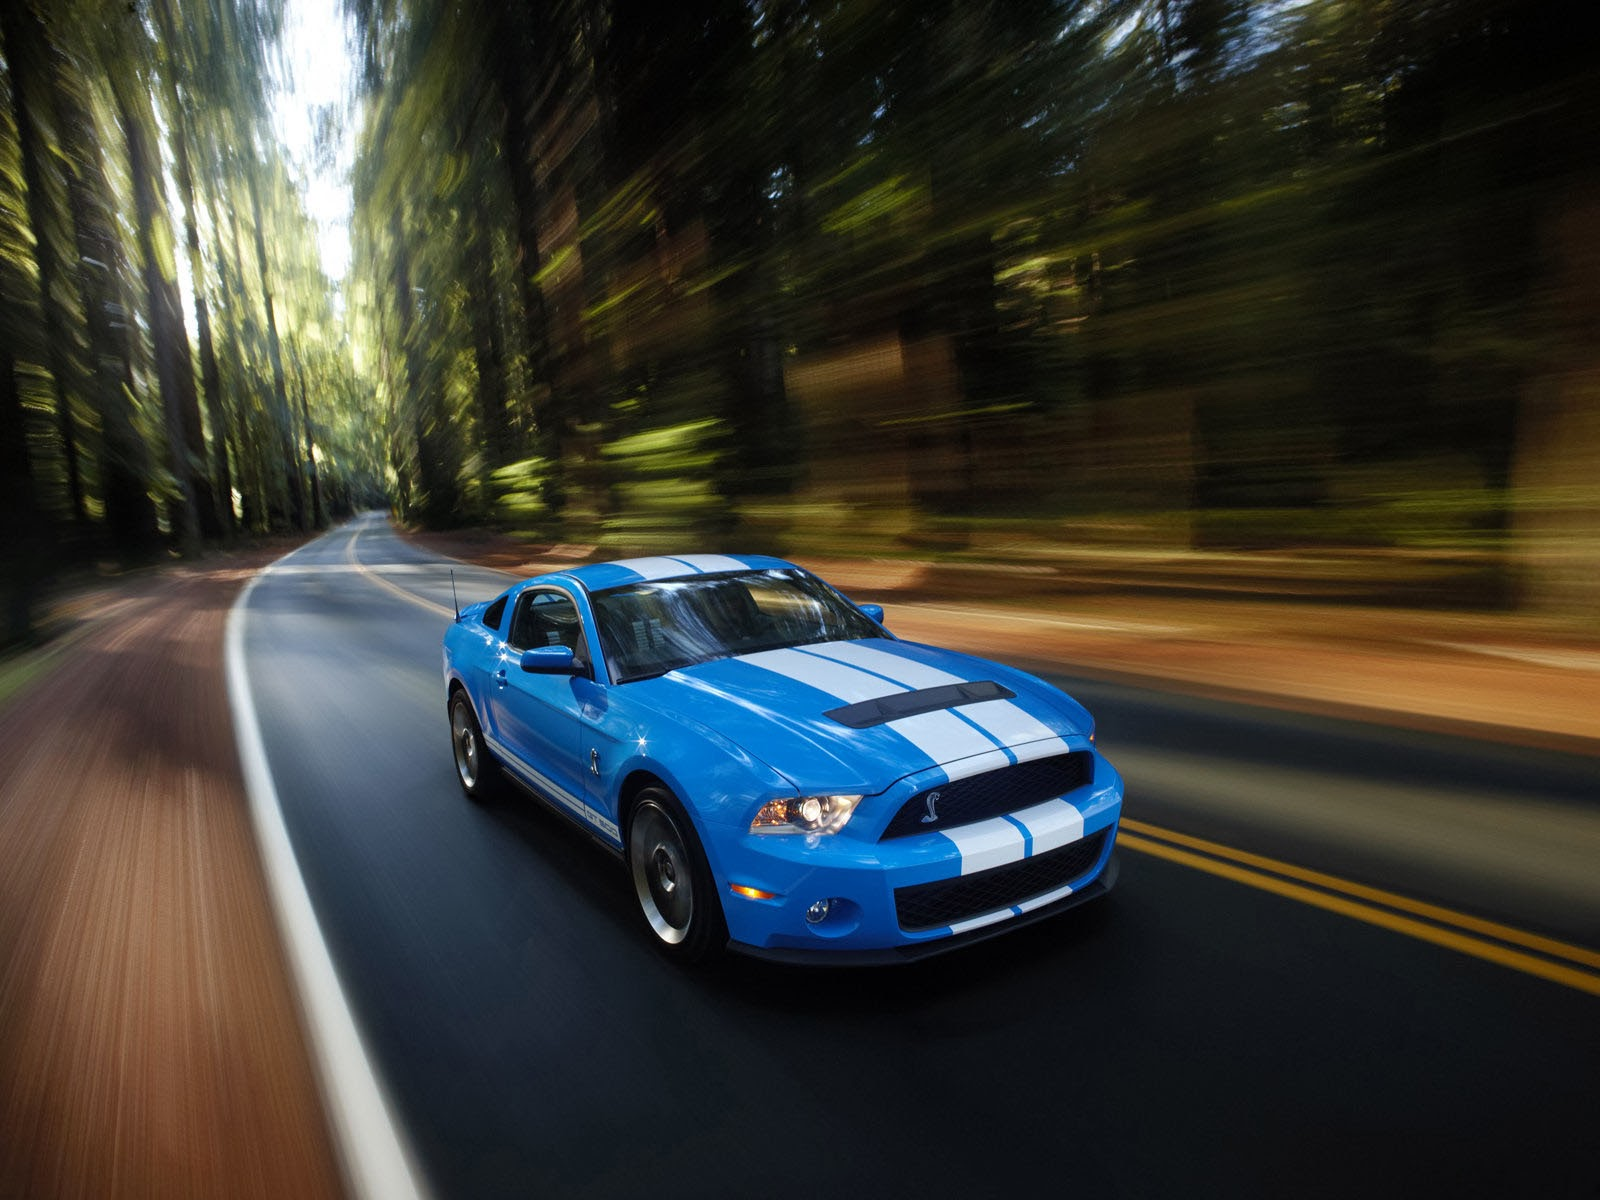 wallpapers ford mustang shelby gt500 car wallpapers. Black Bedroom Furniture Sets. Home Design Ideas